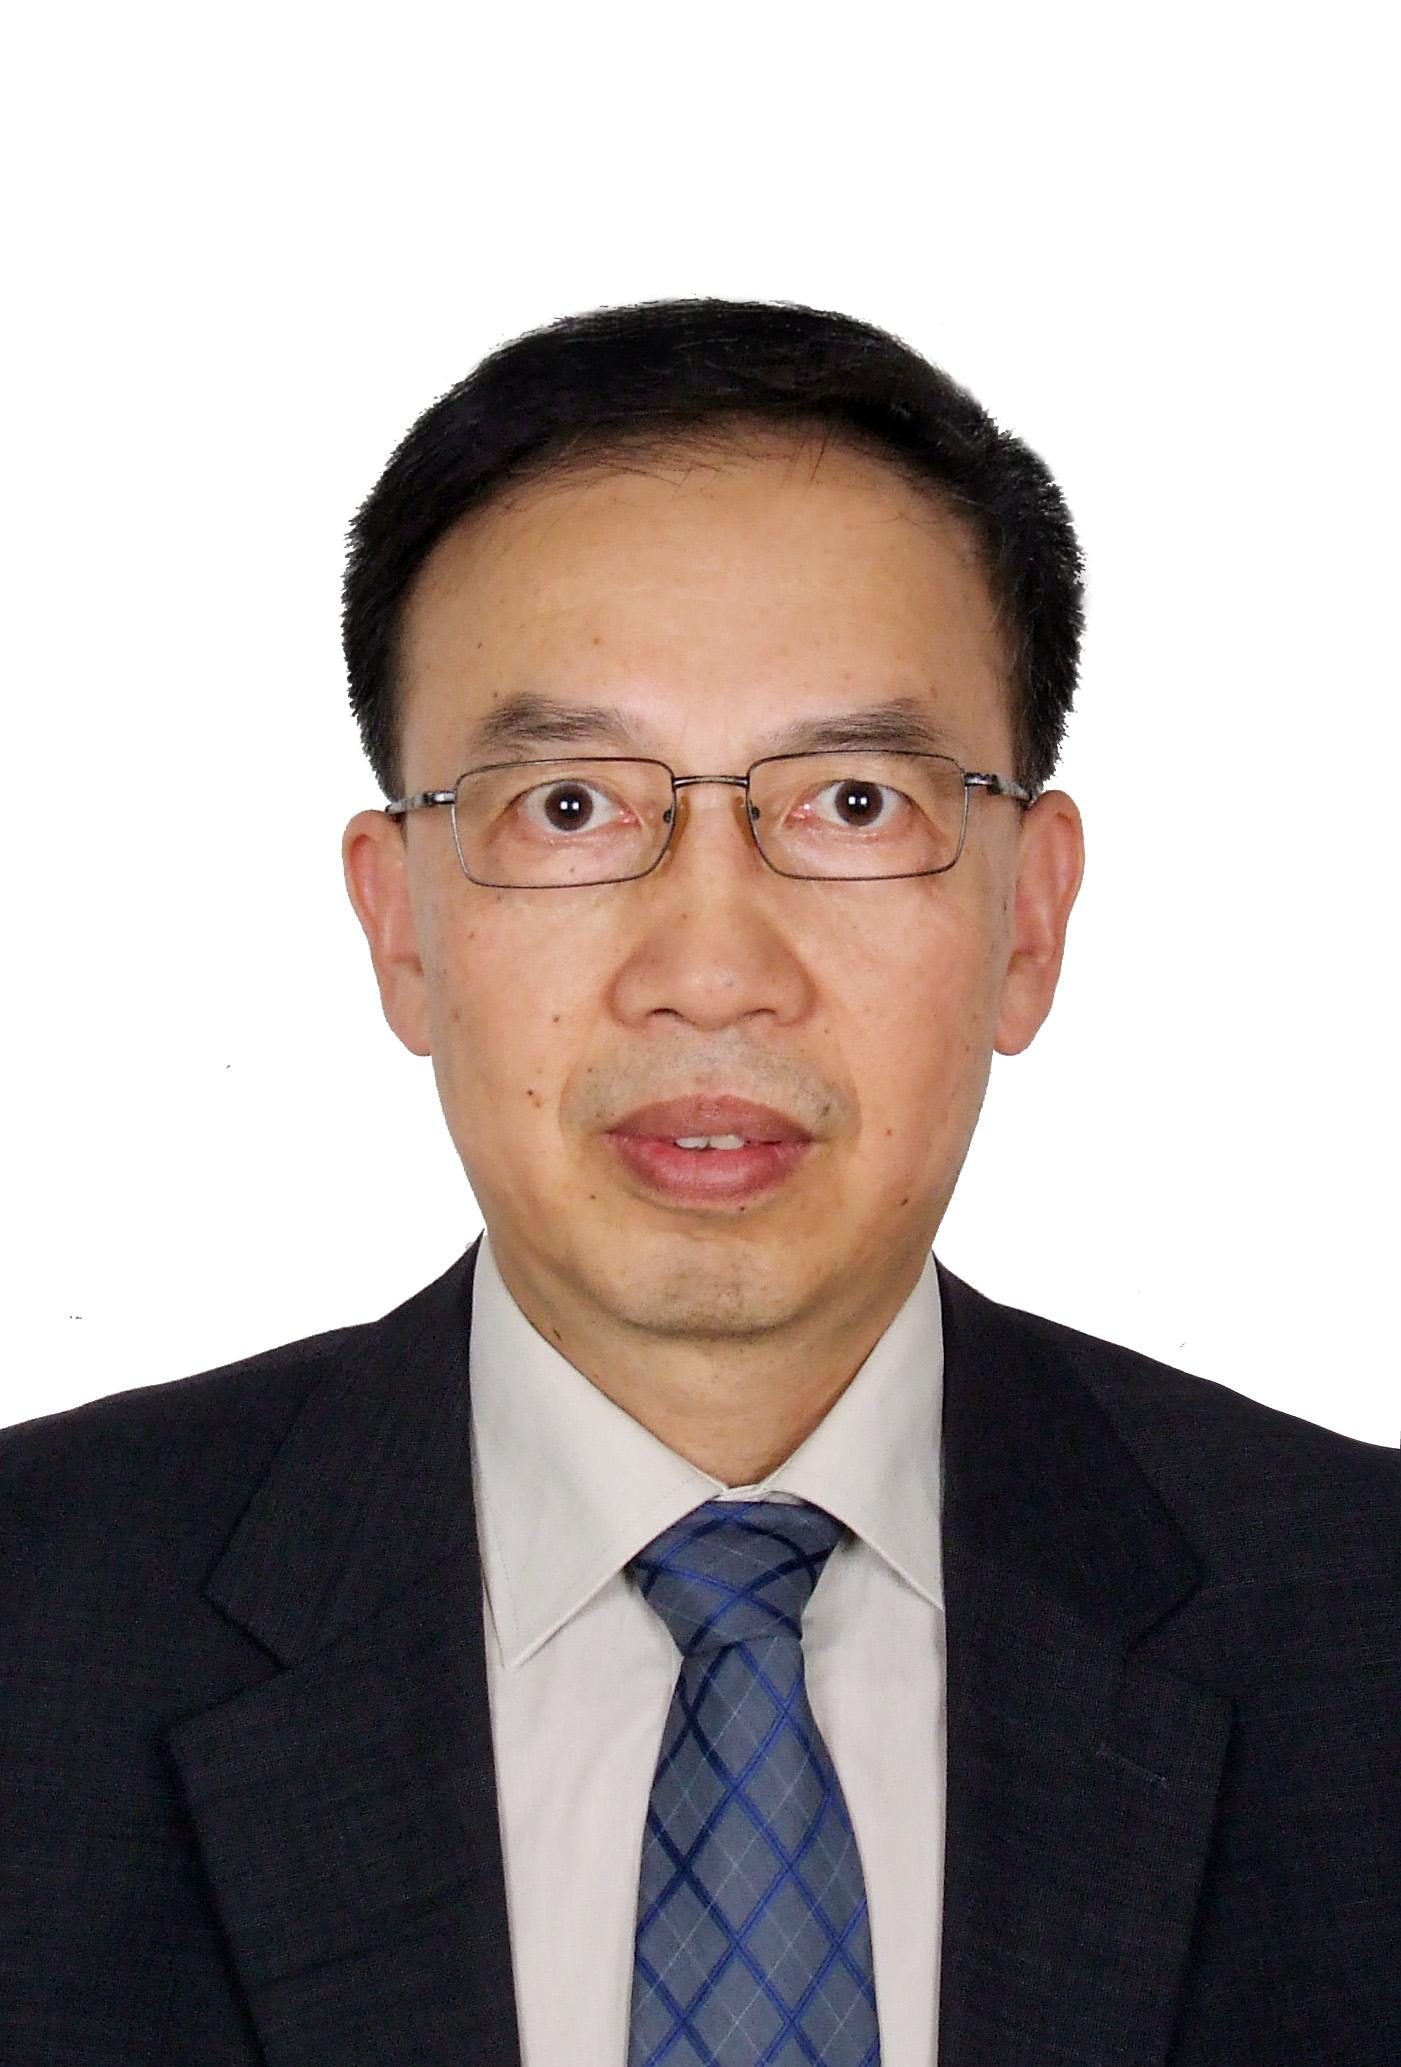 Photo of Zhe Chen